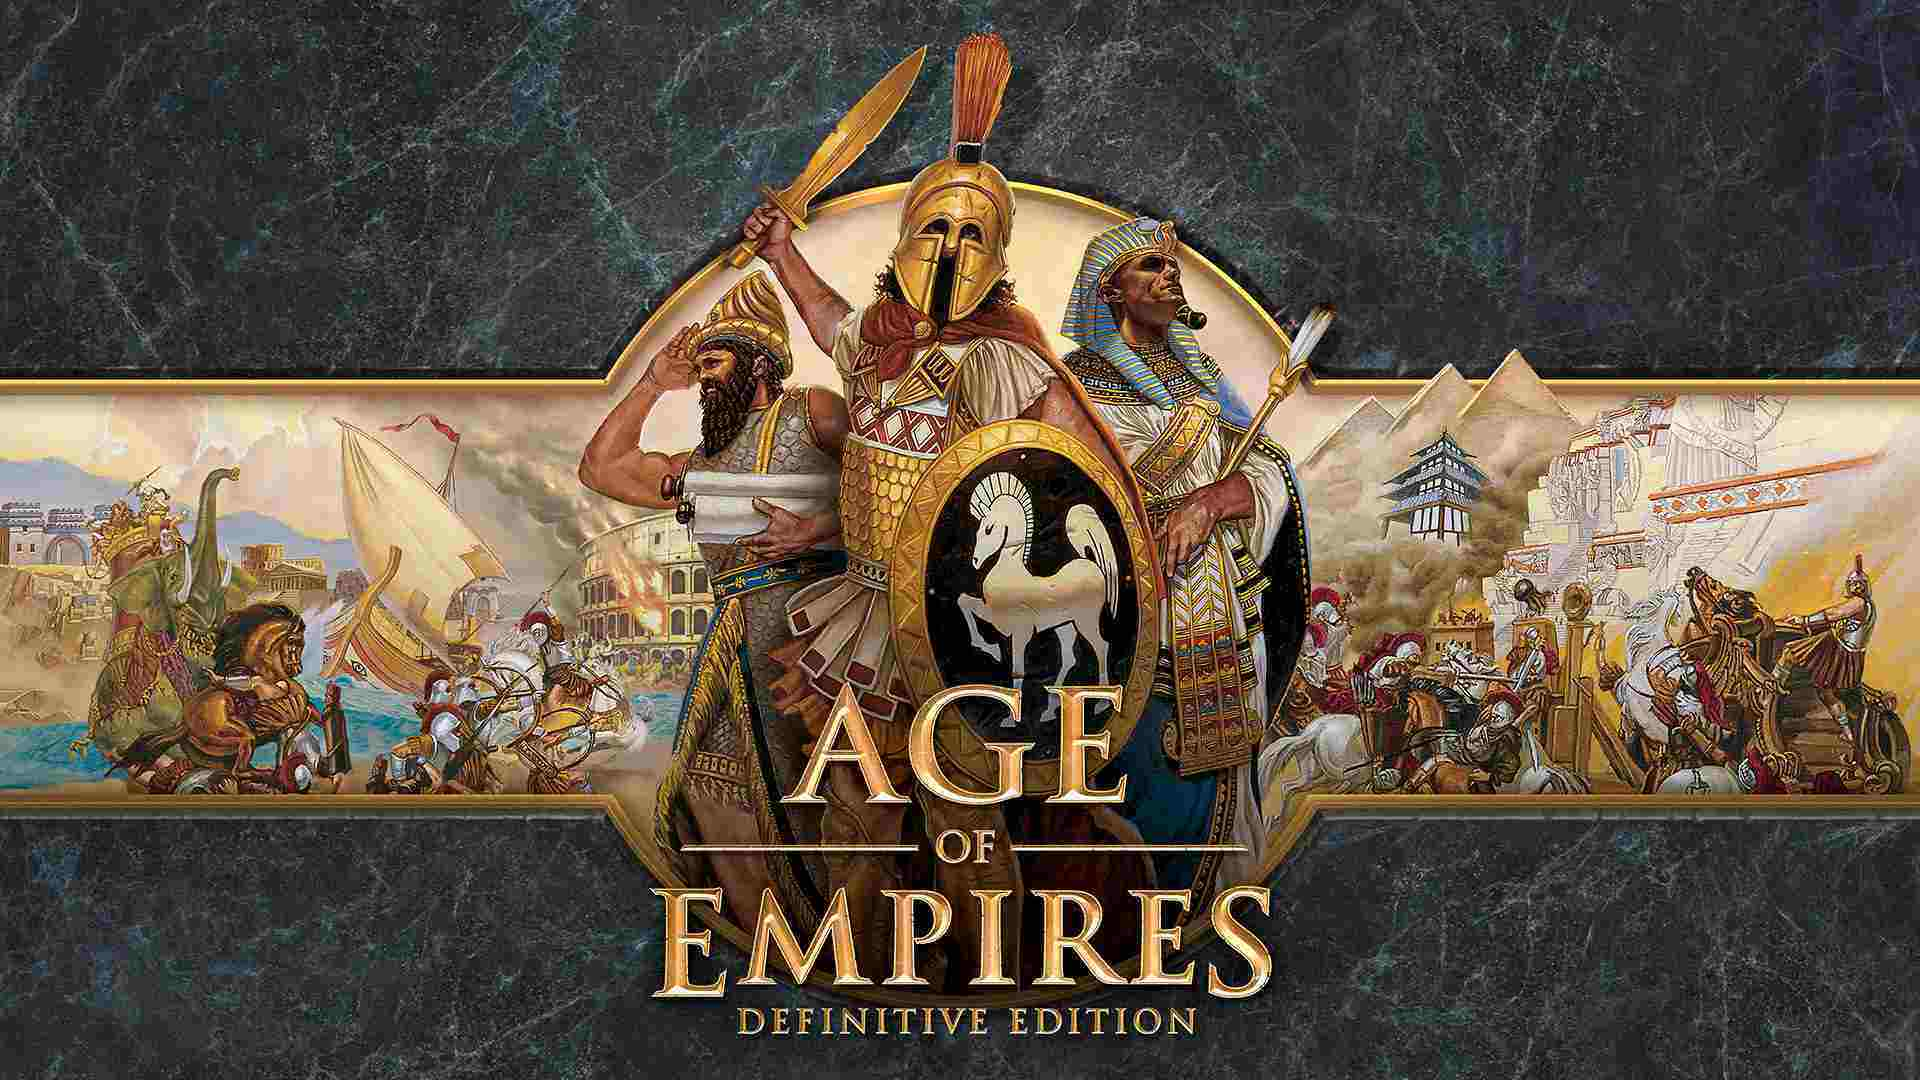 Nostalgie in neuer Auflage - Age of Empires Definitive Edition